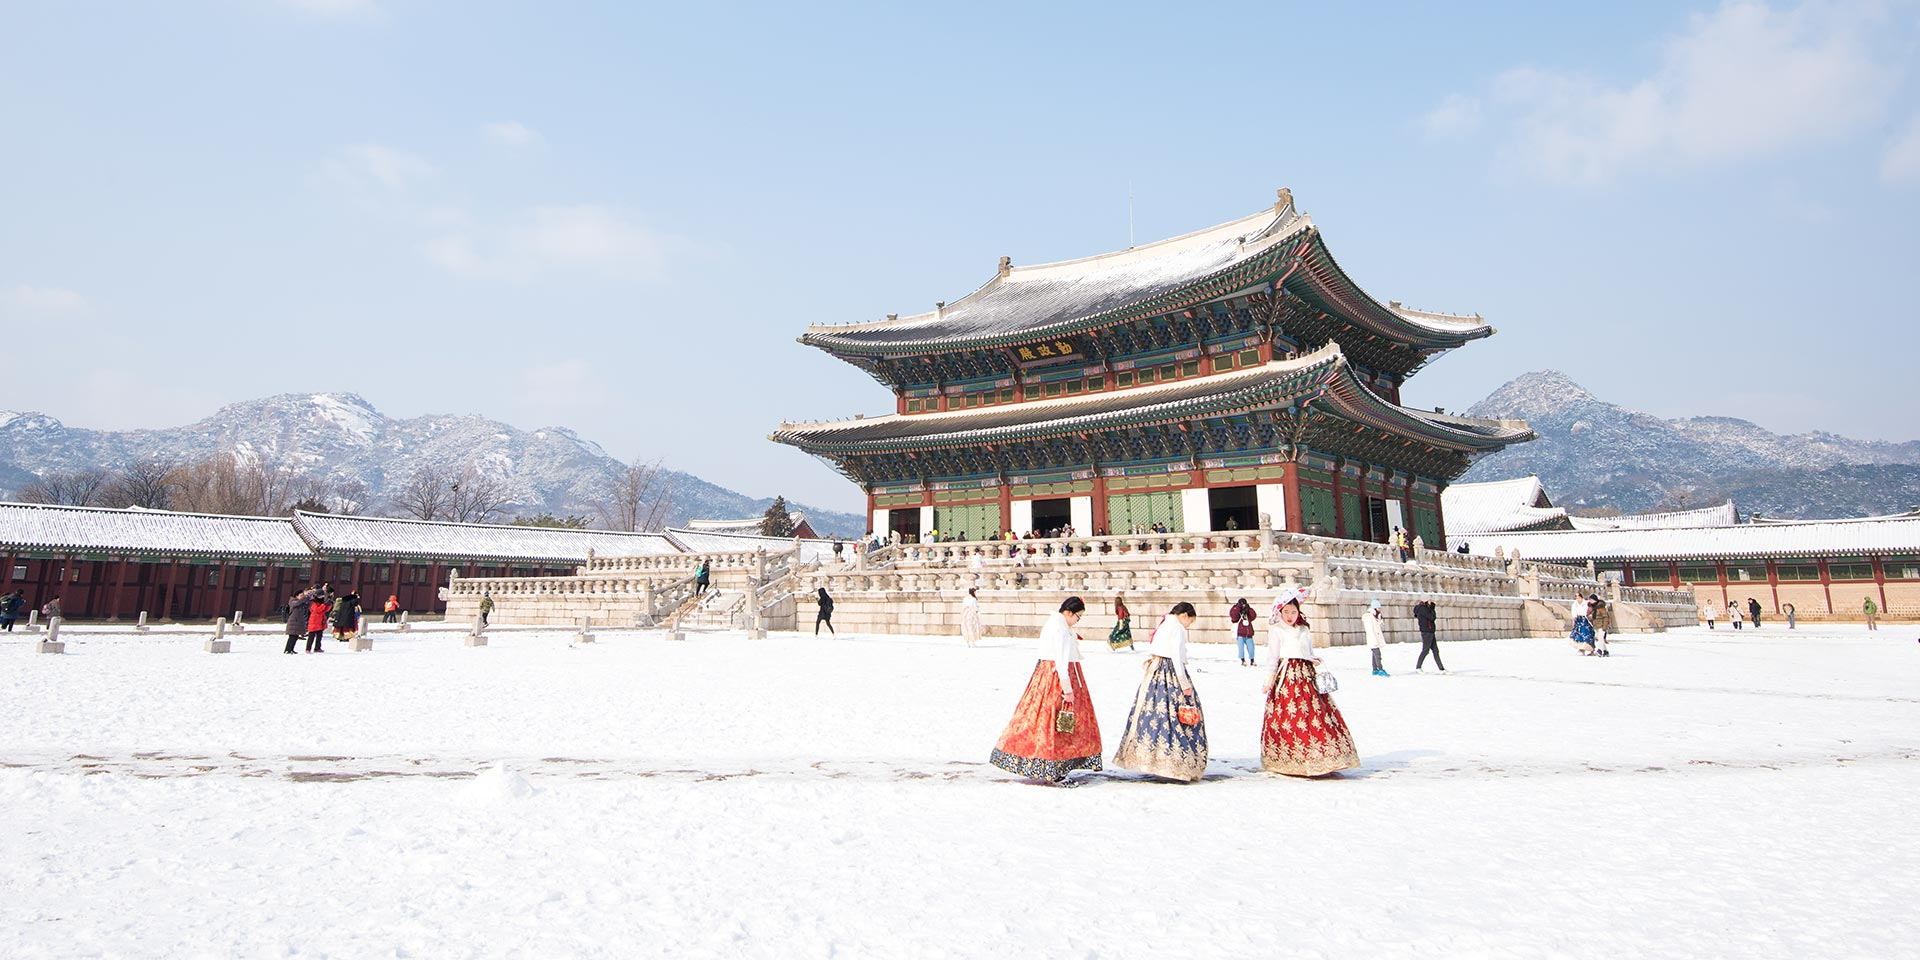 Remote Lands Cold Winter Pick: Seoul for the City and the Skiing